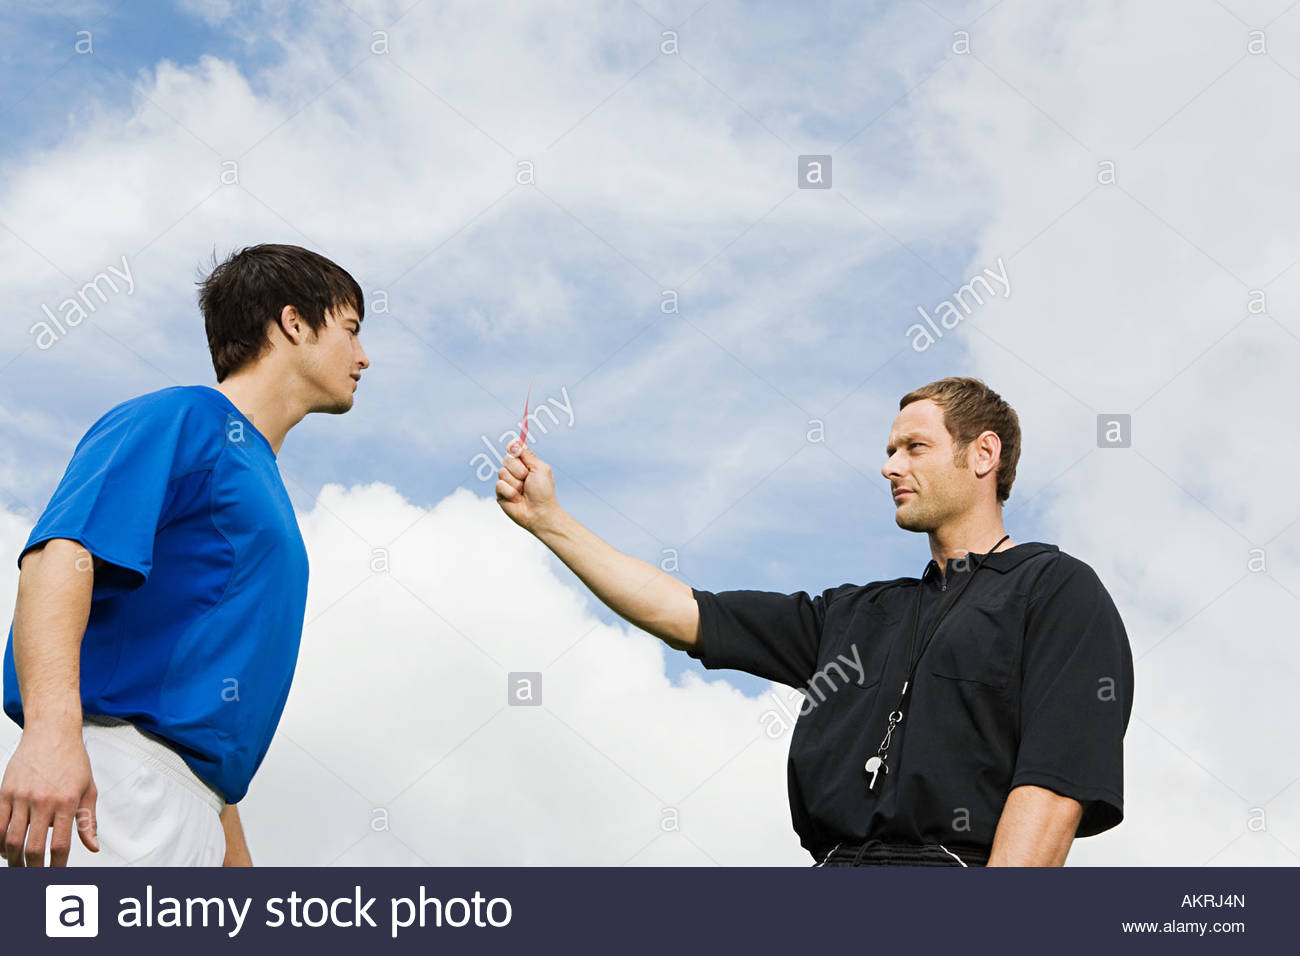 A referee showing a footballer a red card - Stock Image